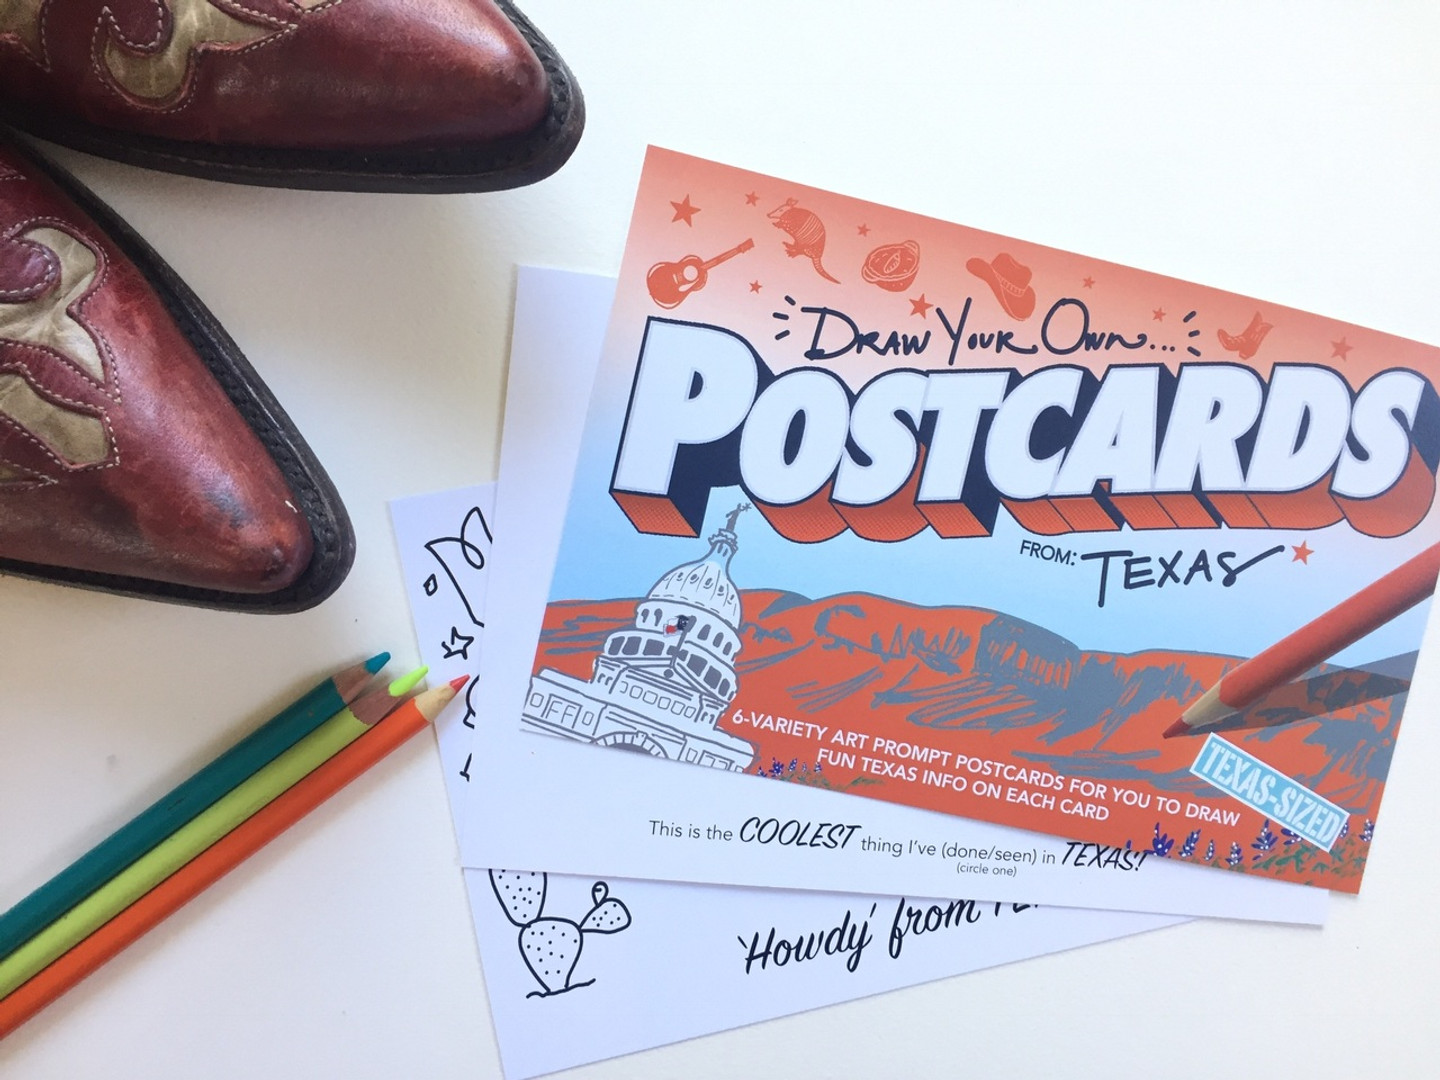 TEXAS-SIZED Texas POSTcards | Draw Your Own (6-Variety)